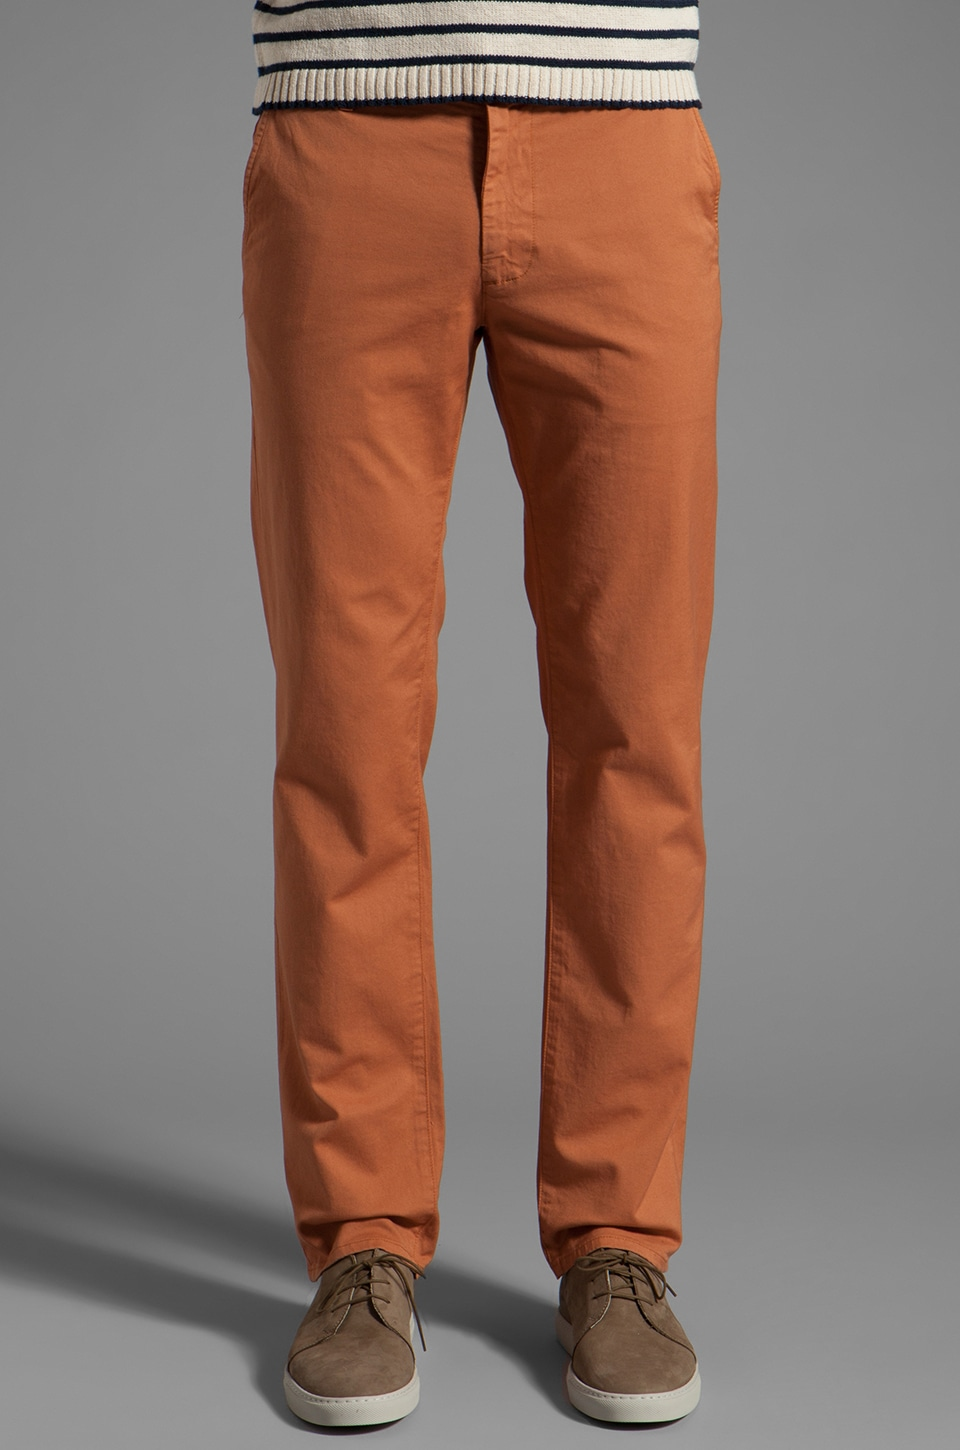 AG Adriano Goldschmied The Slim Khaki in Roadster Orange